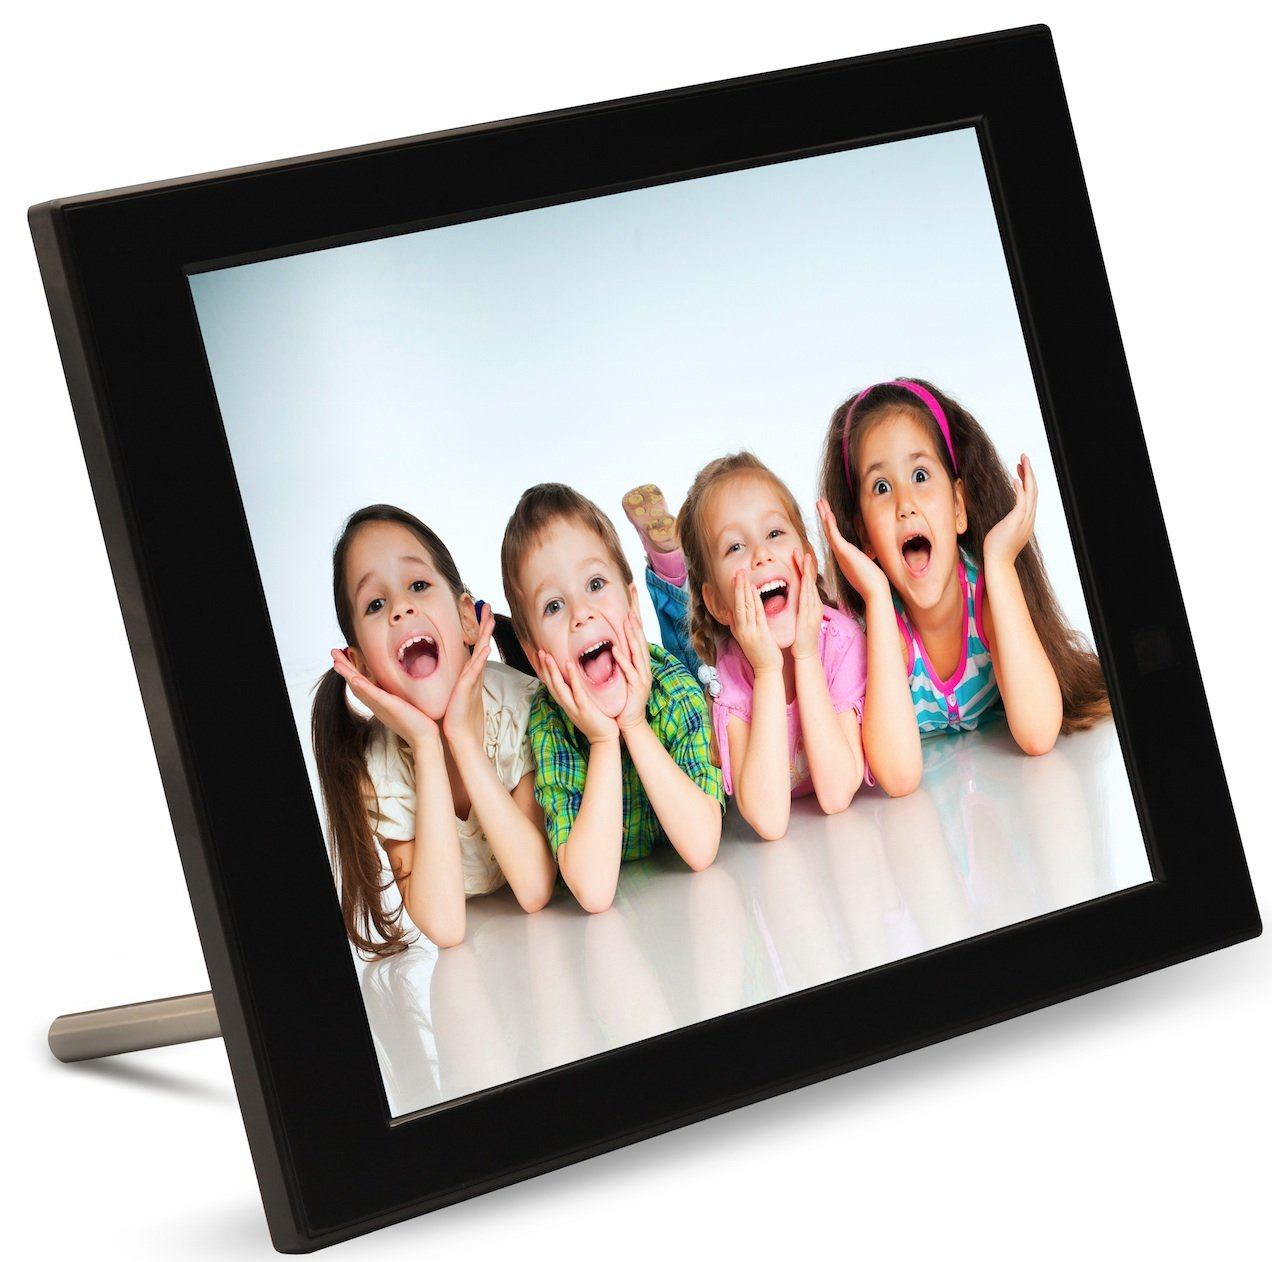 Pix star 15 inch wi fi cloud digital photo frame fotoconnect xd pix star 15 inch wi fi cloud digital photo frame fotoconnect xd with email online providers iphone android app dlna and more black jeuxipadfo Choice Image